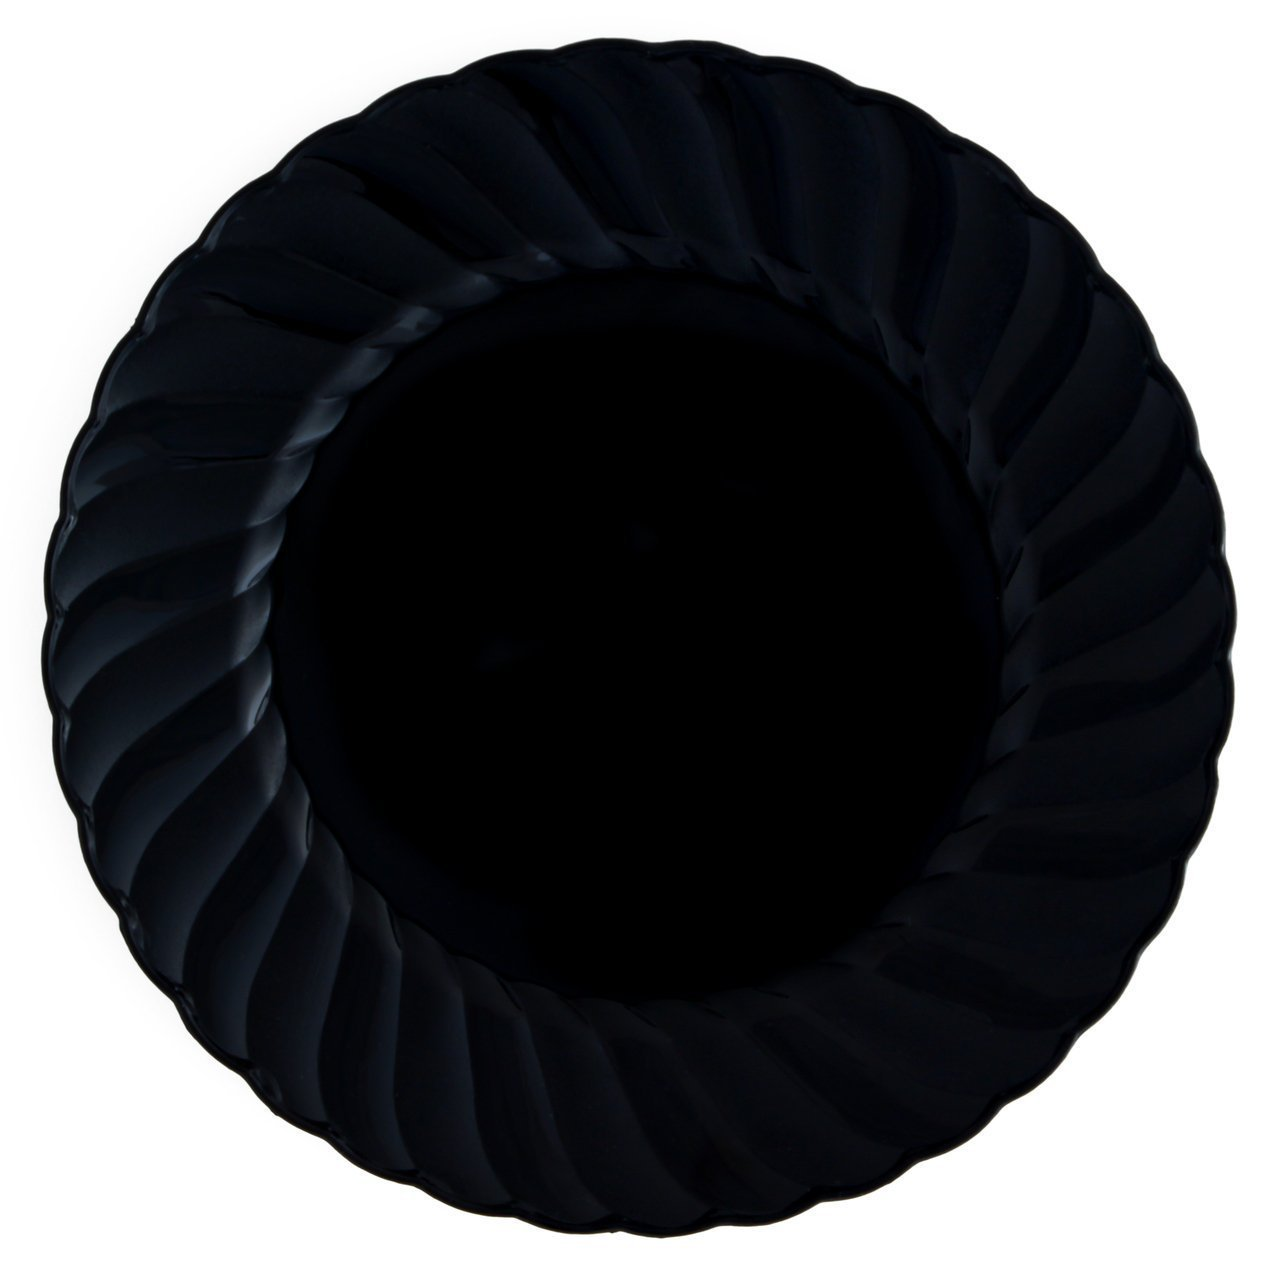 """Kaya Collection - Disposable Black Plastic Round 10.25"""" Dinner Plates - 2 Pack (36 Plates)"""